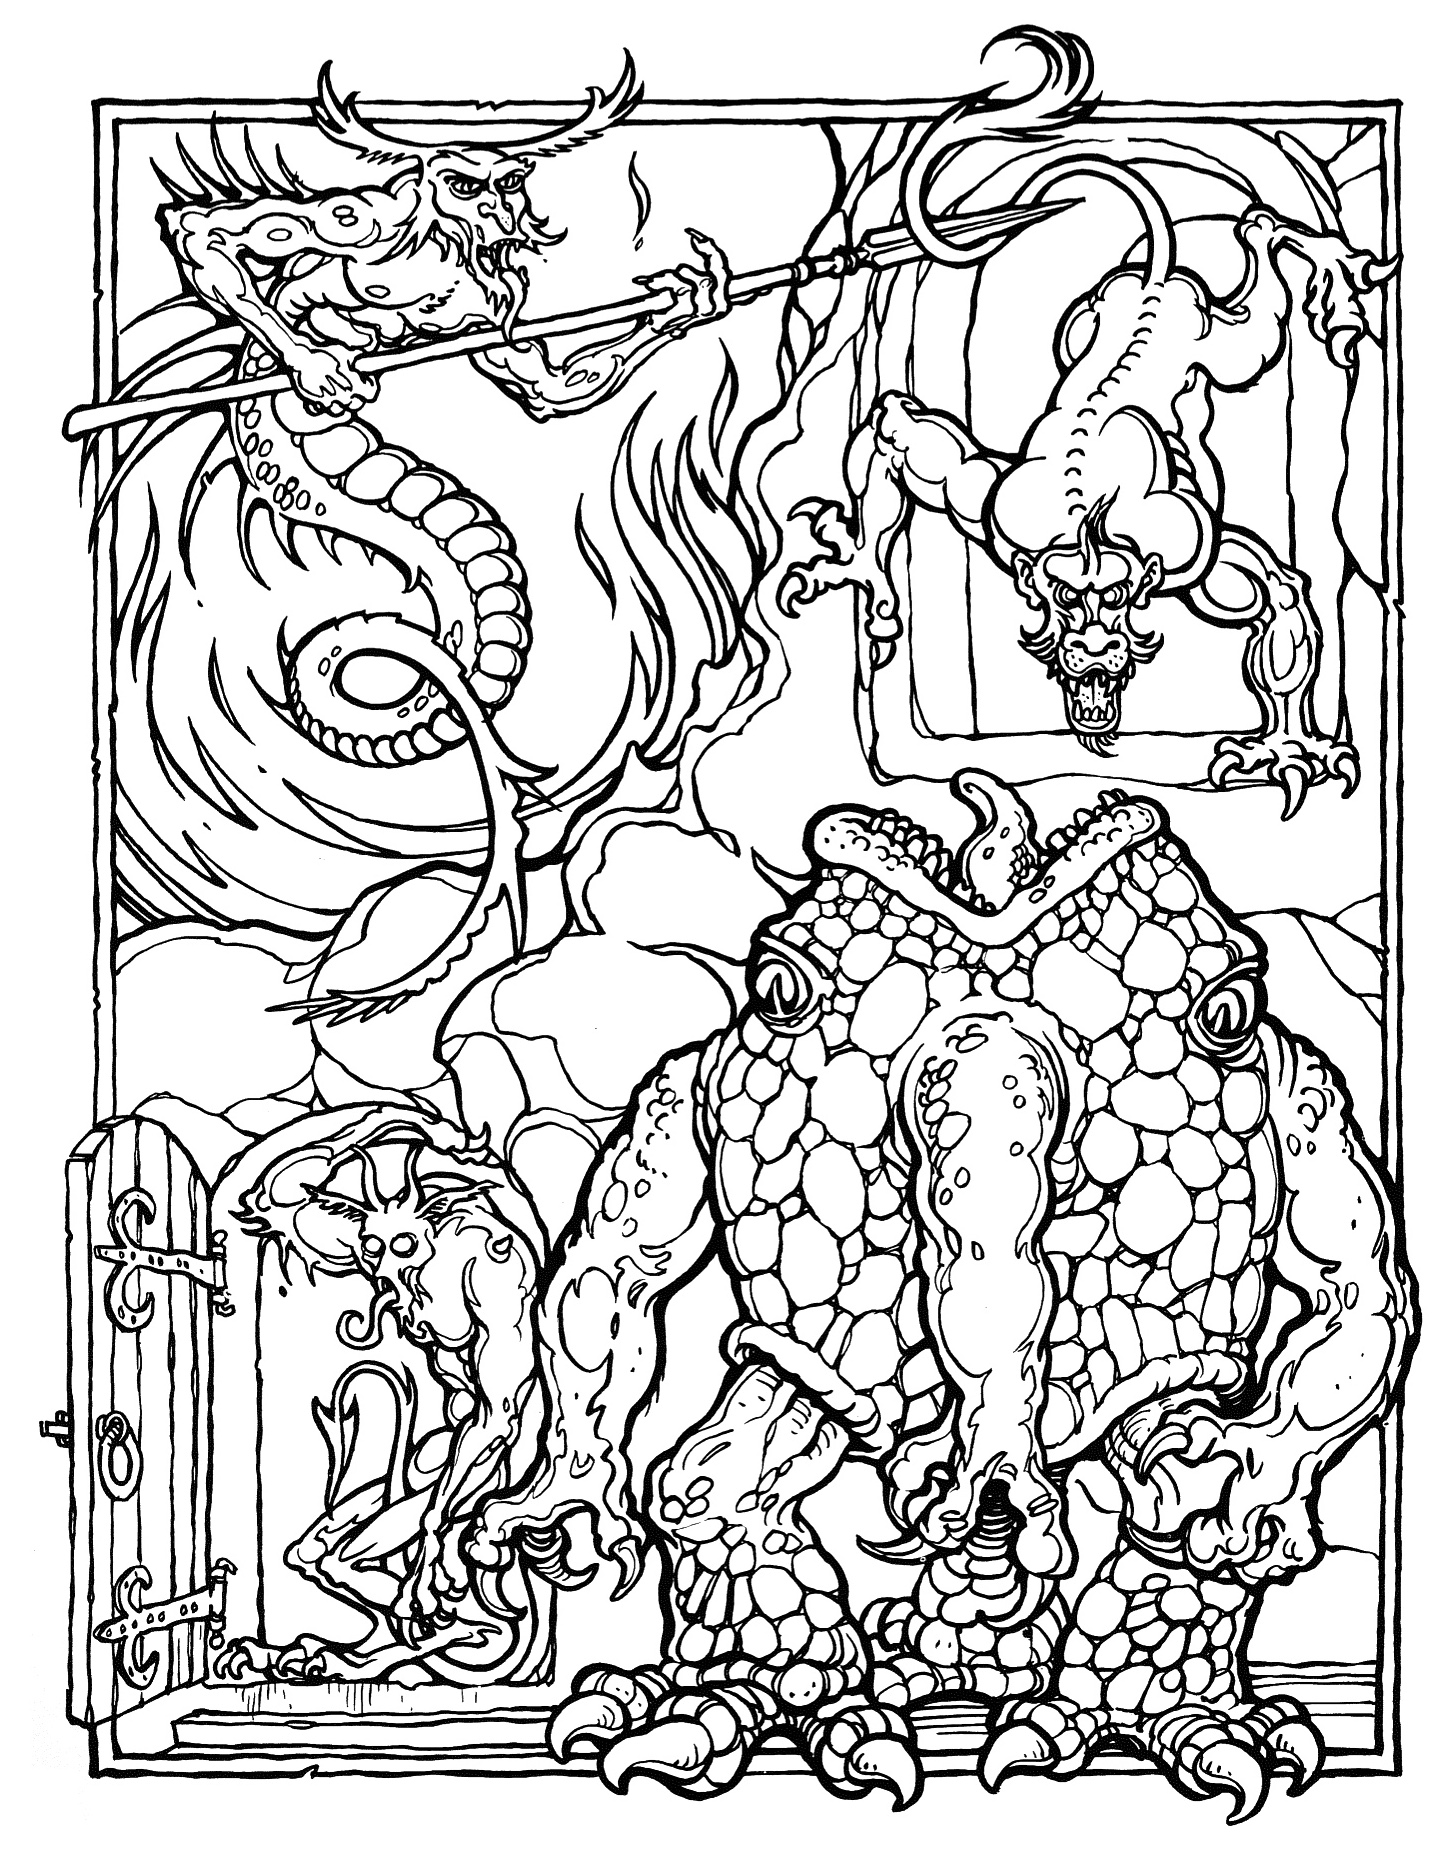 dungeons and dragons coloring pages - photo#12